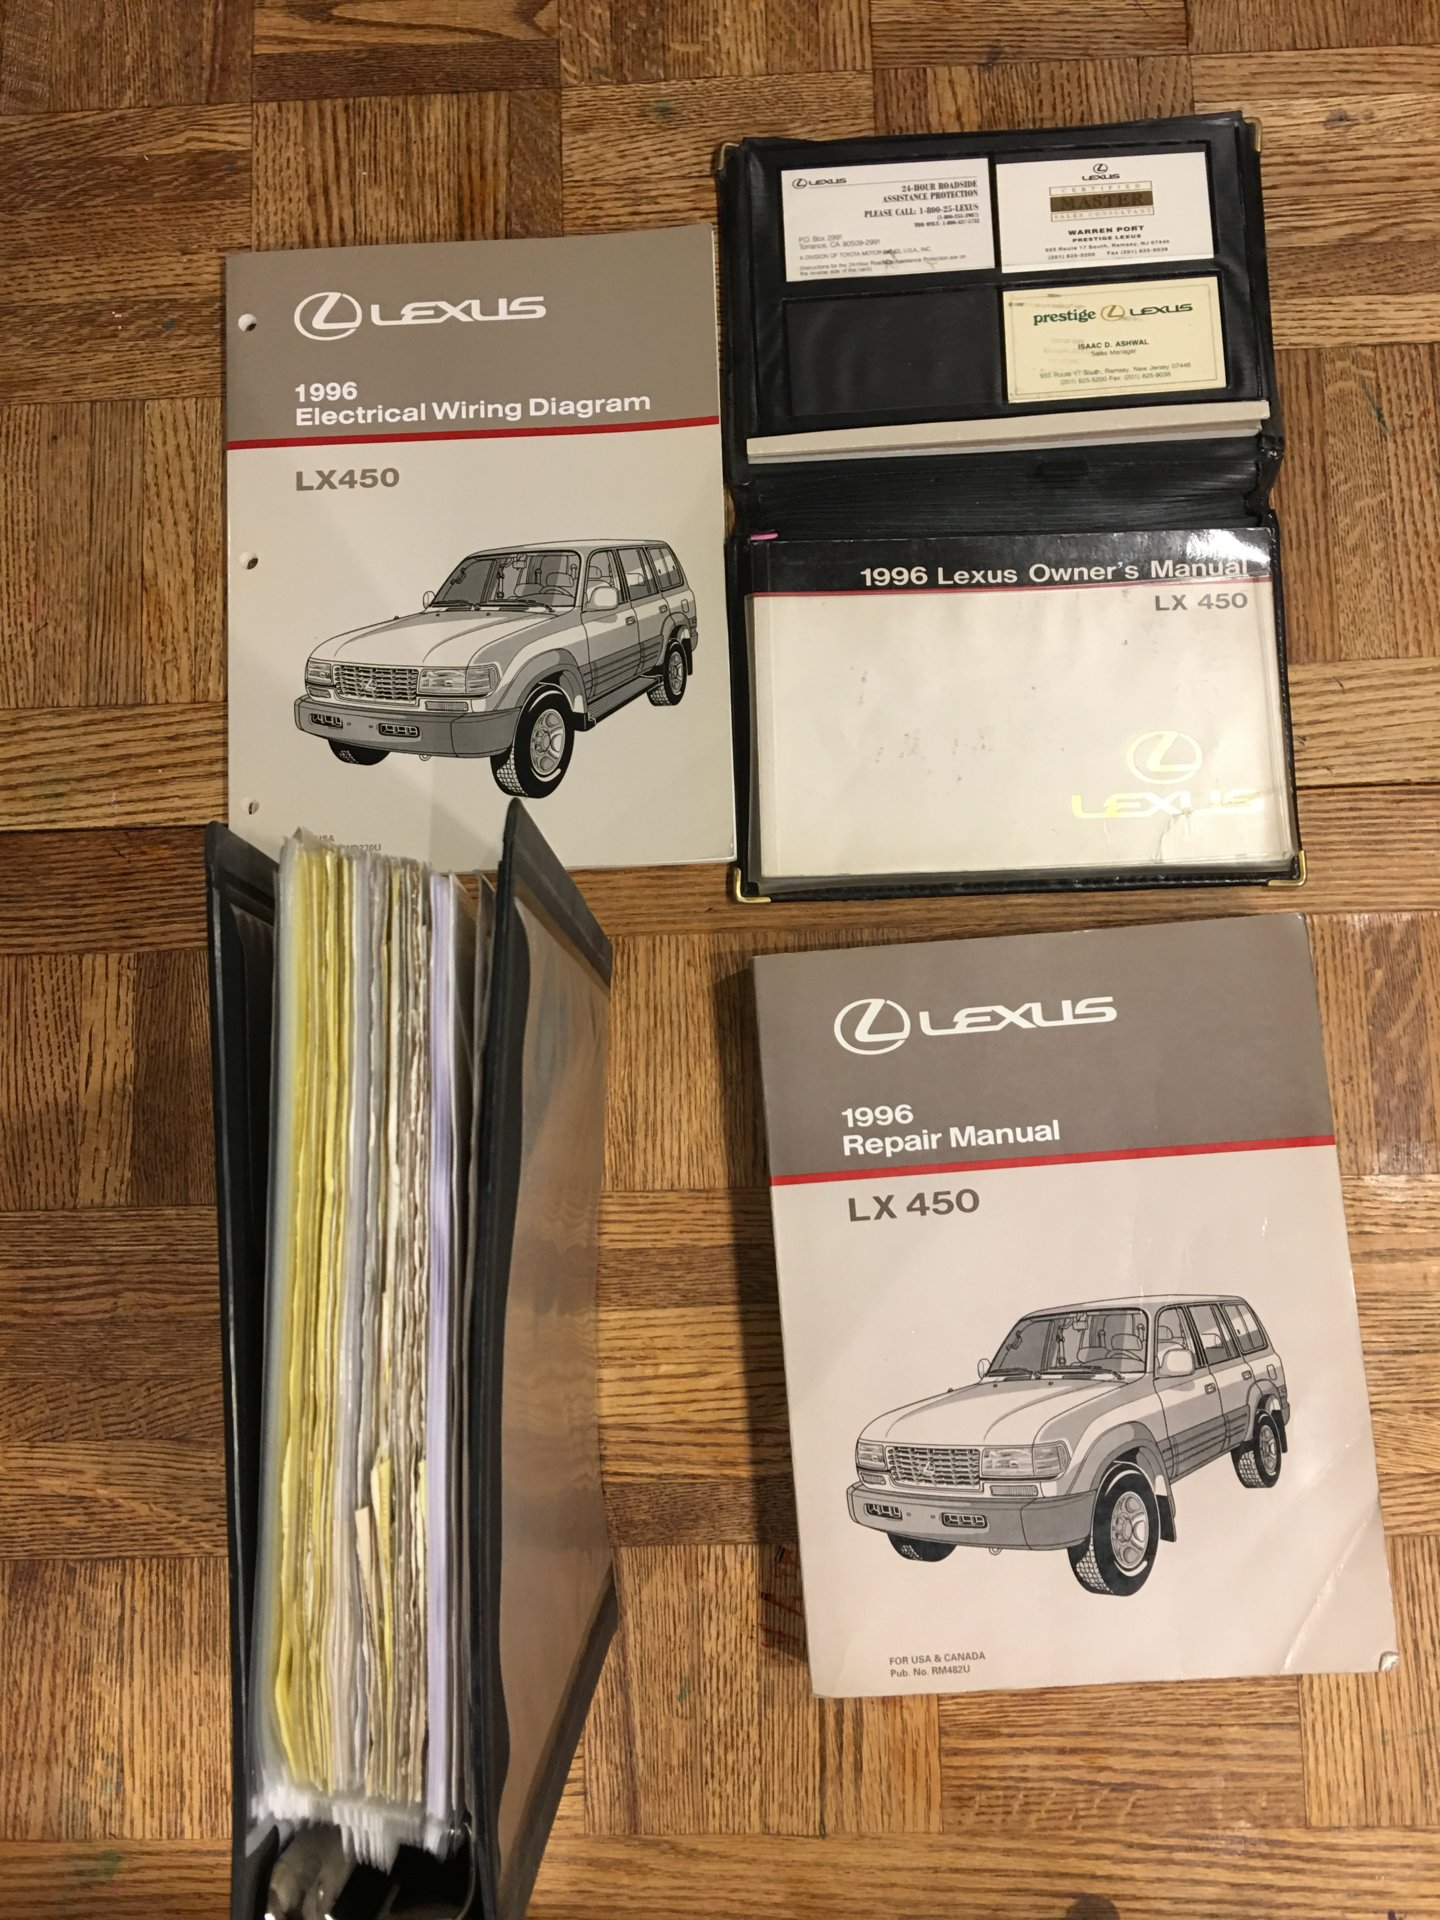 For Sale Lexus Lx450 New Jersey Usa Ih8mud Forum Electrical Wiring Diagram Manual Img 3284